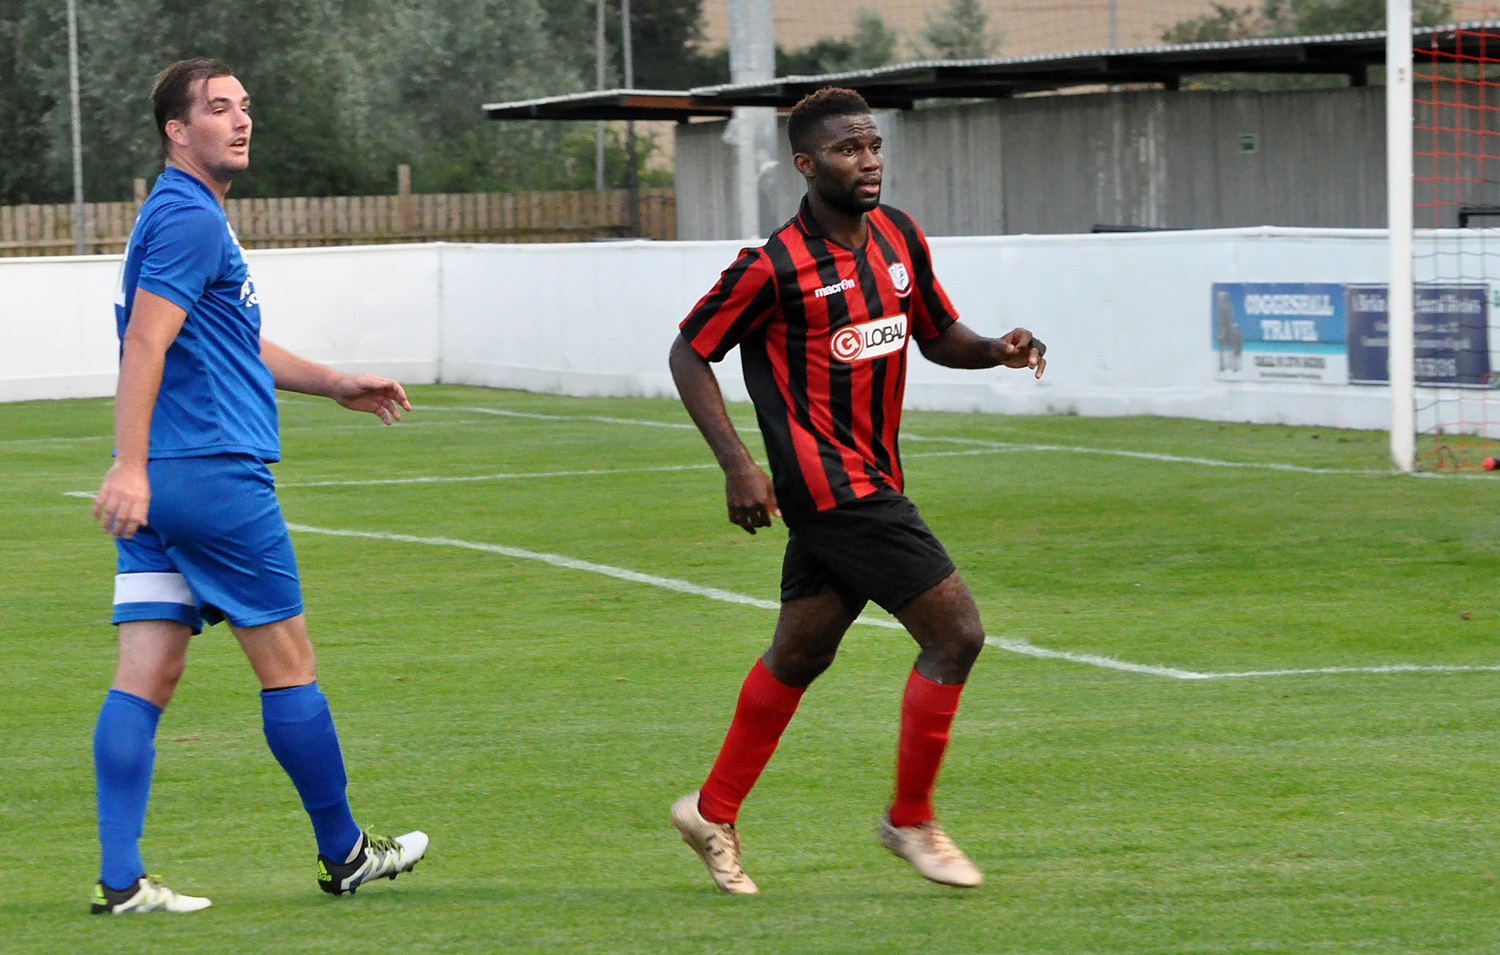 coggeshall-5-1-stanway-rovers-01-08-17-22